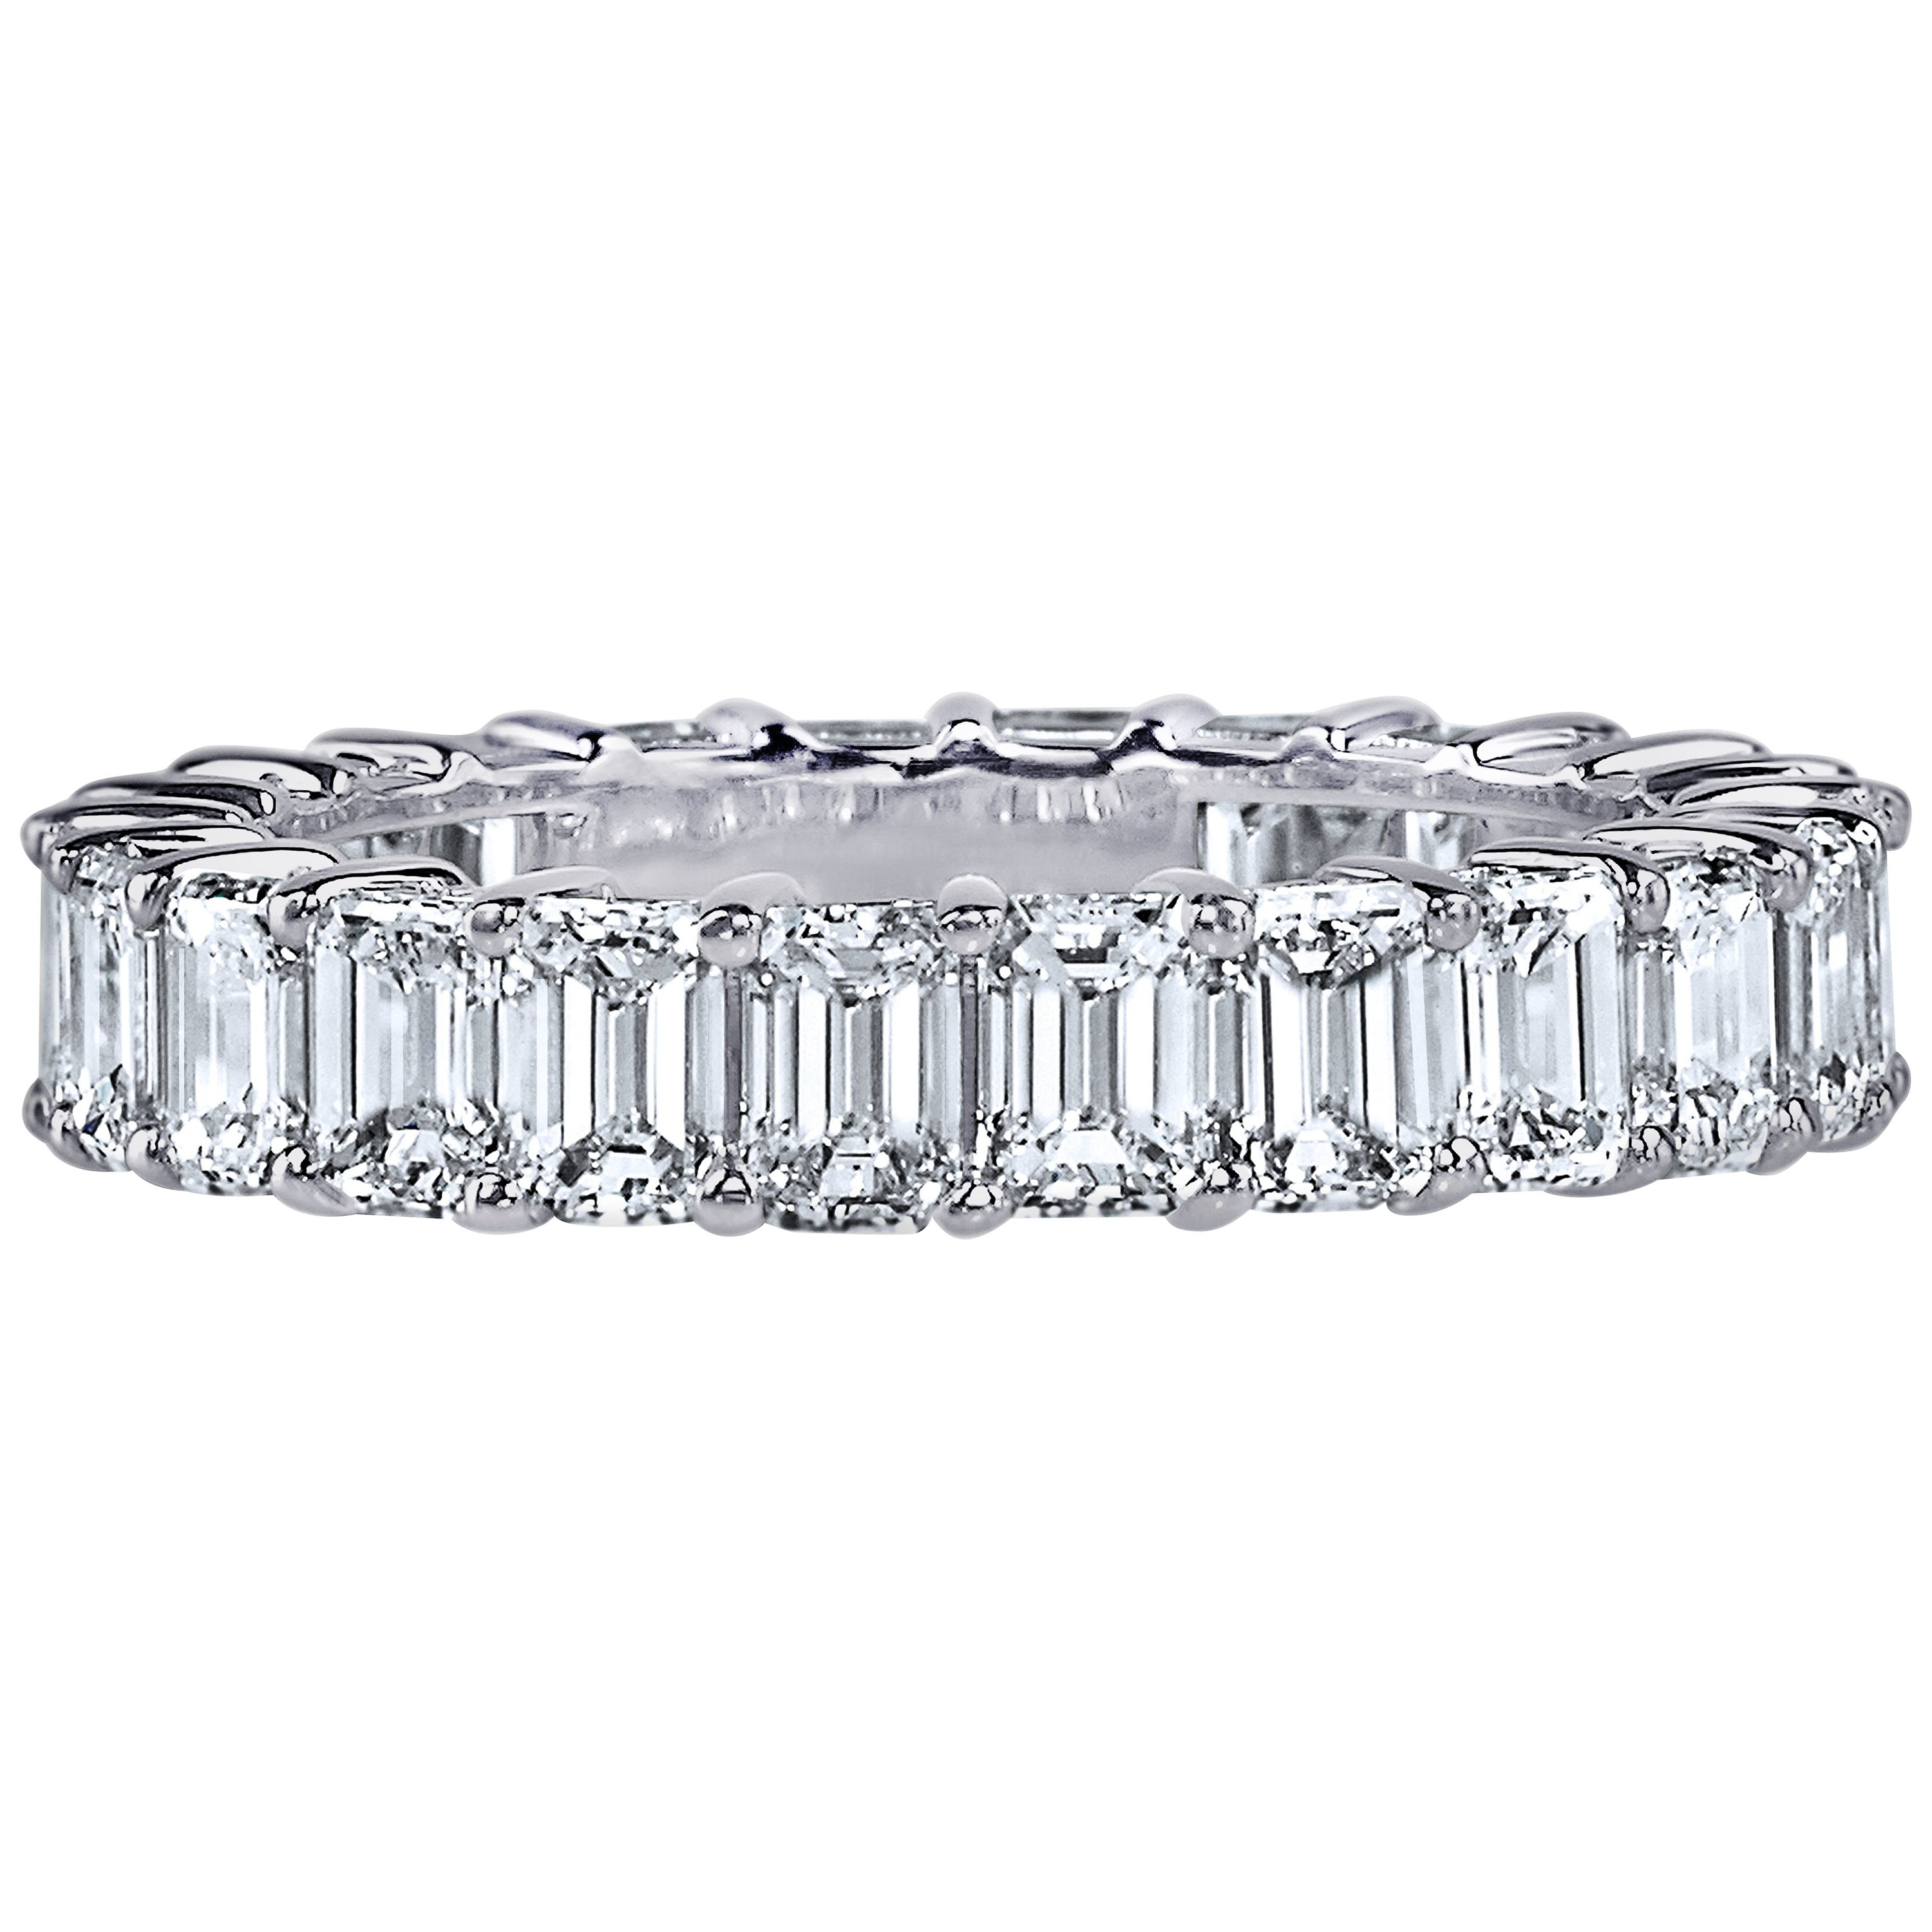 GIA Certified 6.00 Carat Emerald Cut Diamond Ring Platinum Eternity Band